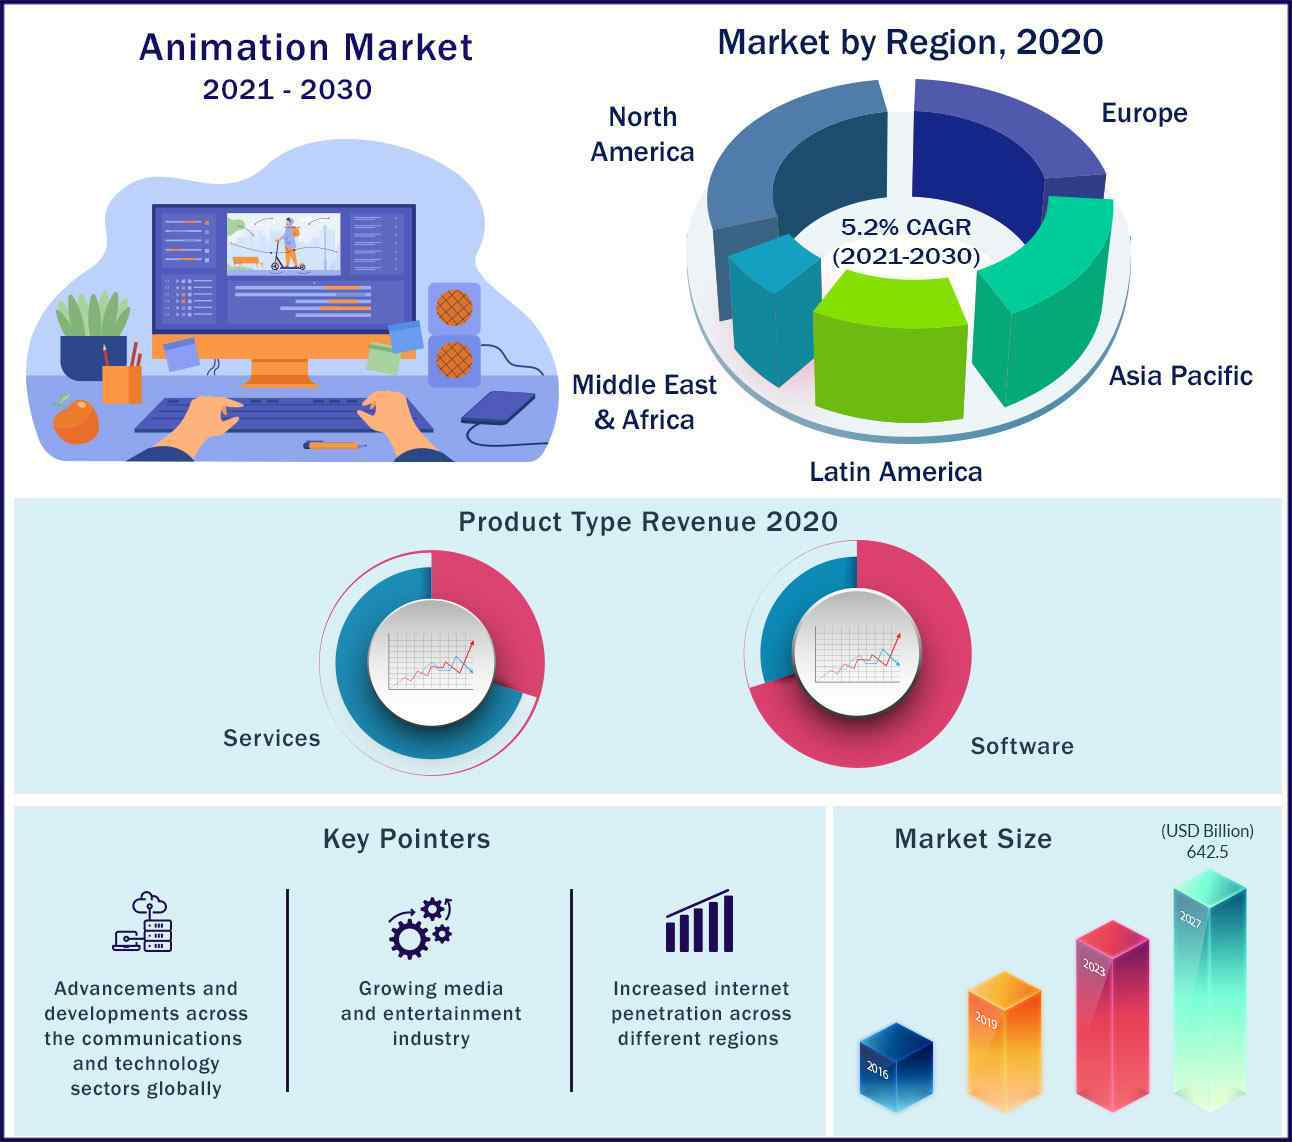 Global Animation Market 2021-2030